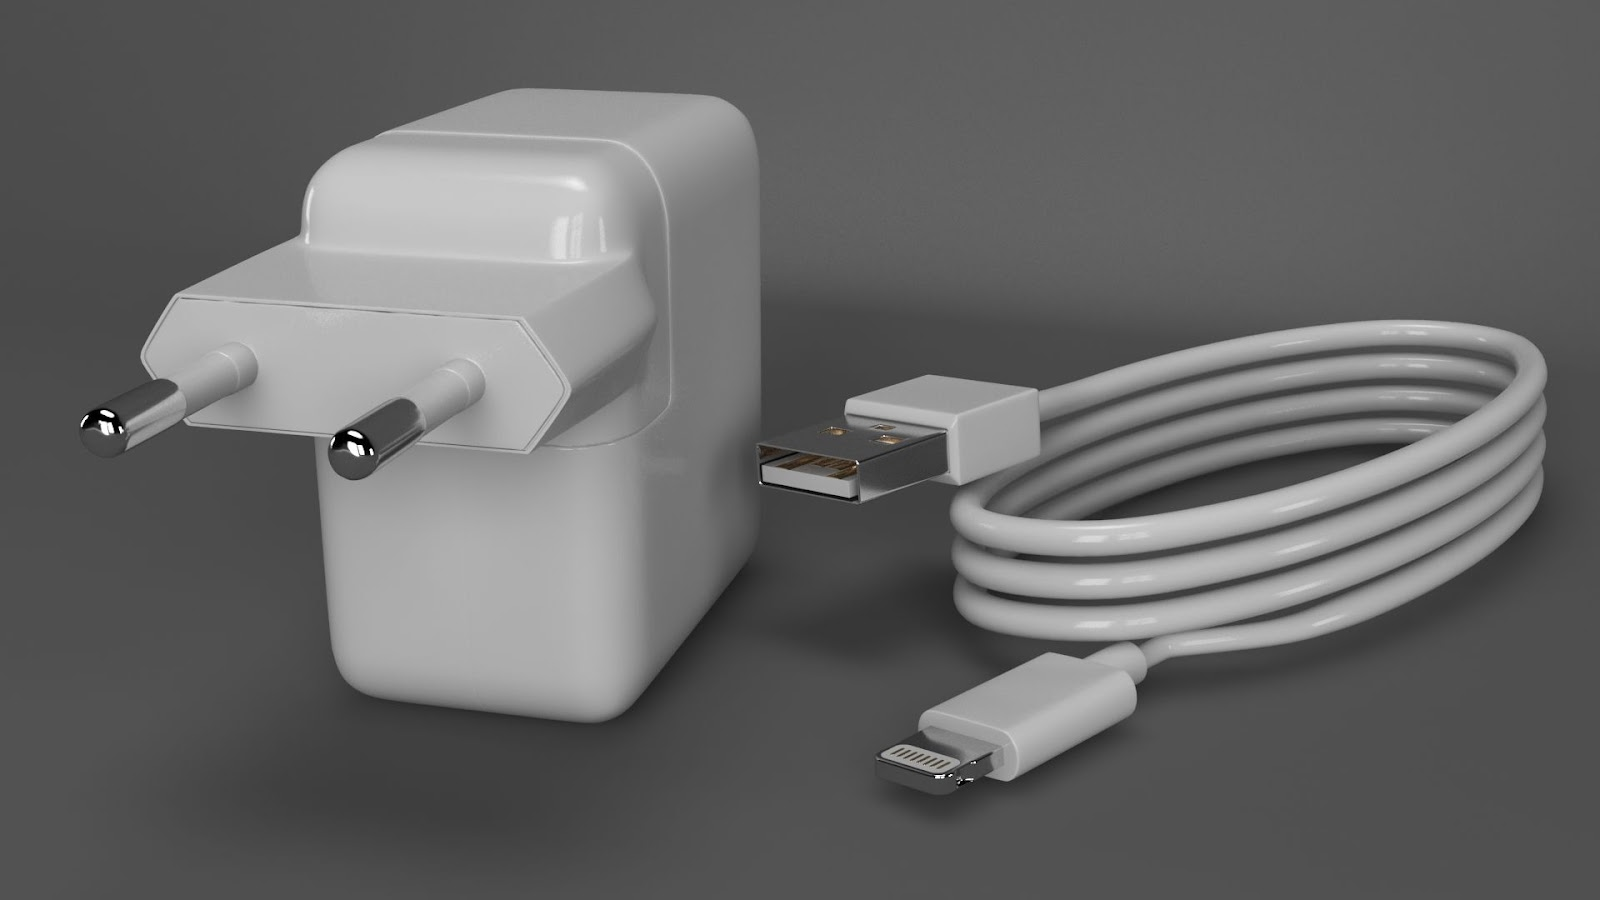 device usb charger